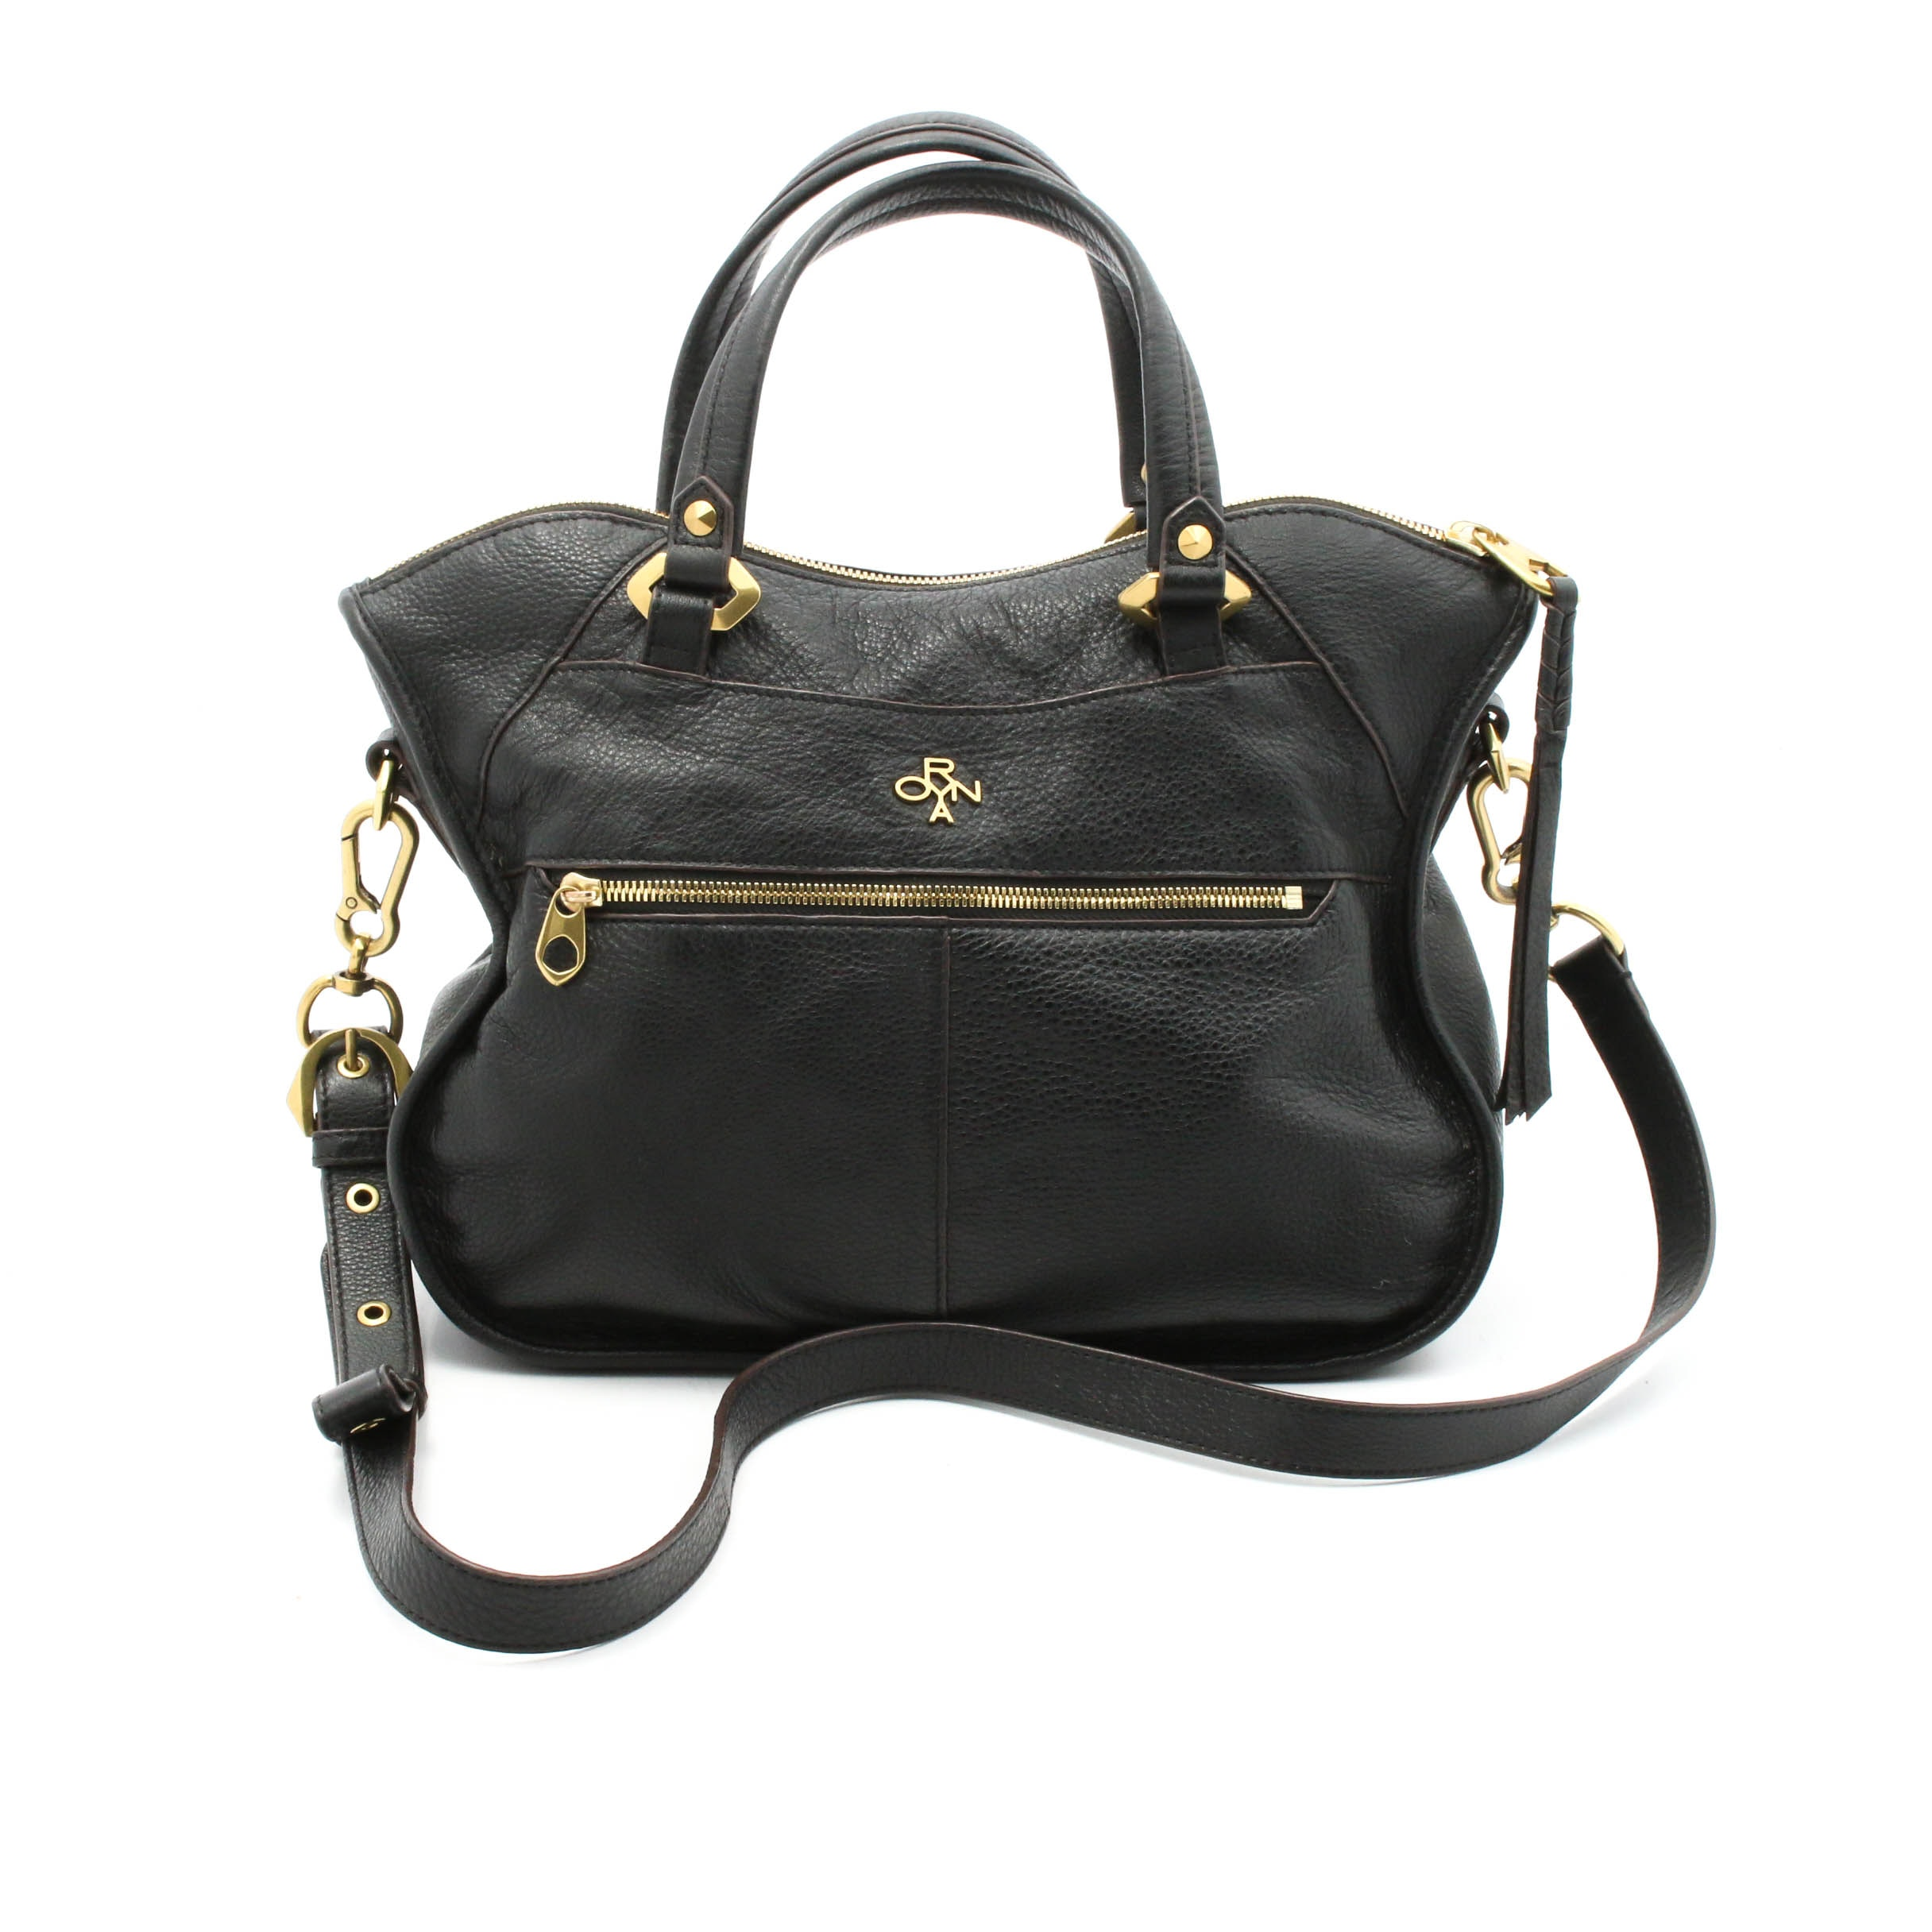 orYANY Black Leather Shoulder Bag